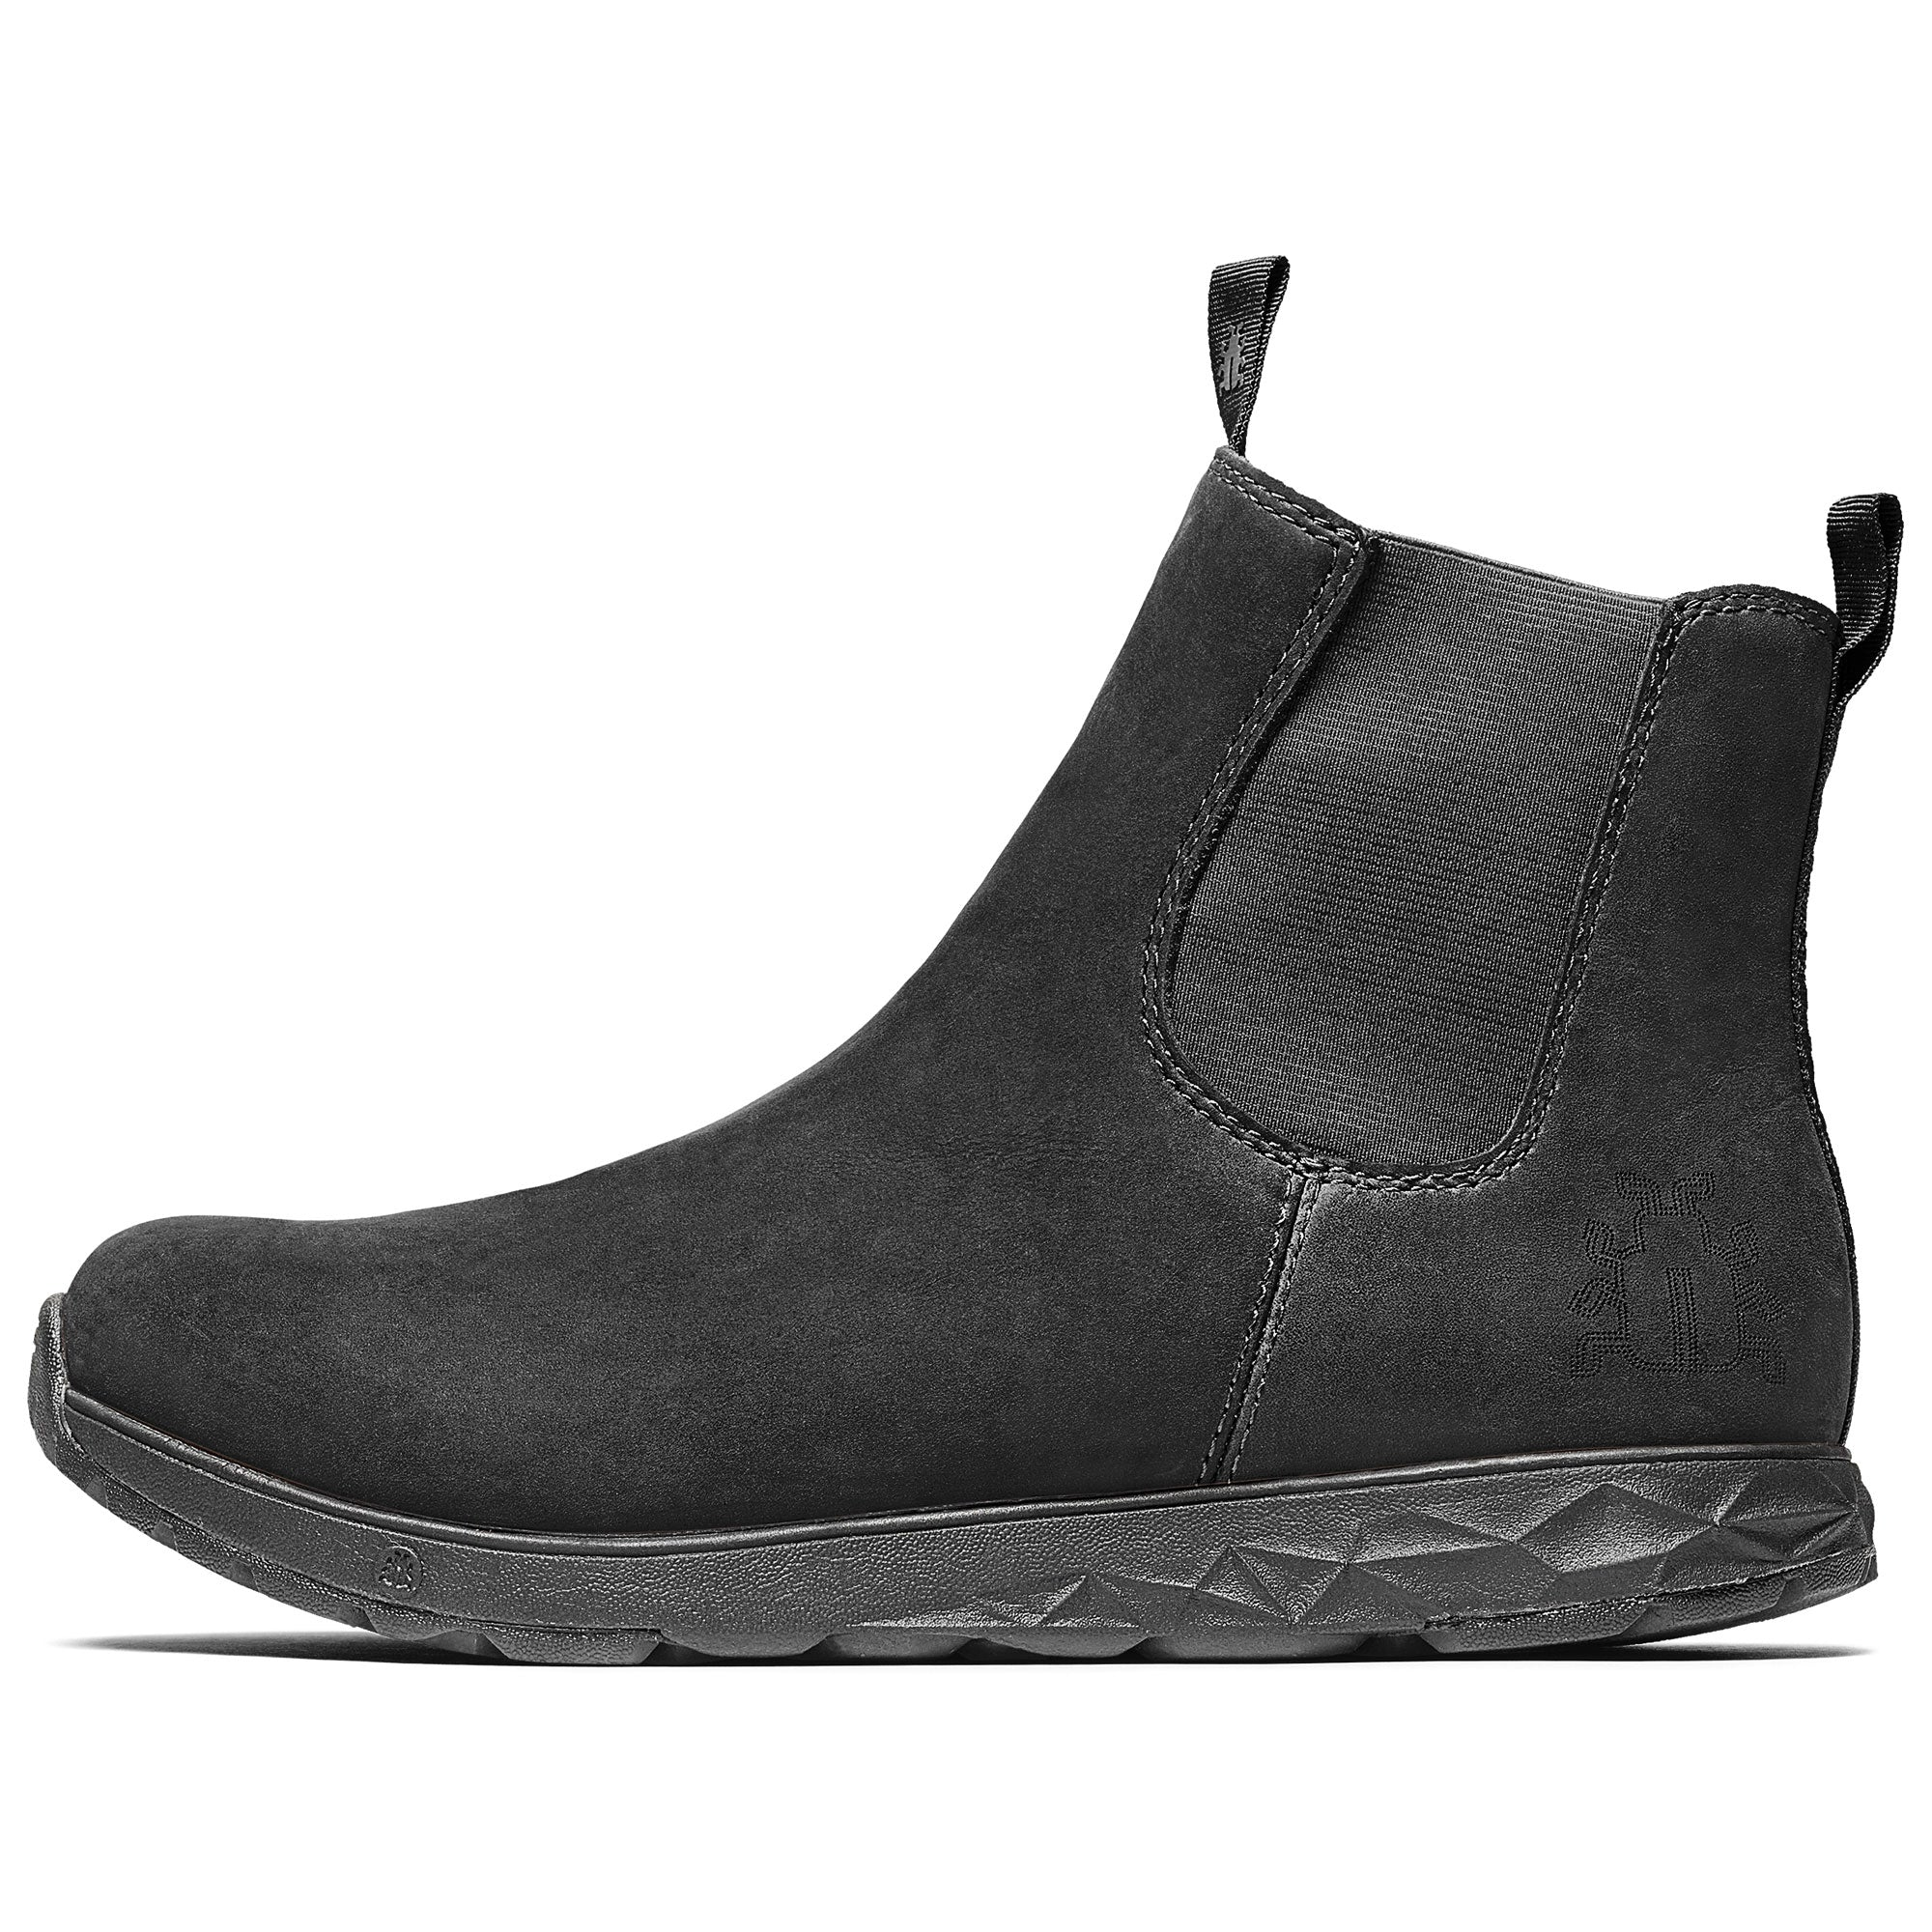 Wander Men's Michelin Wic Black